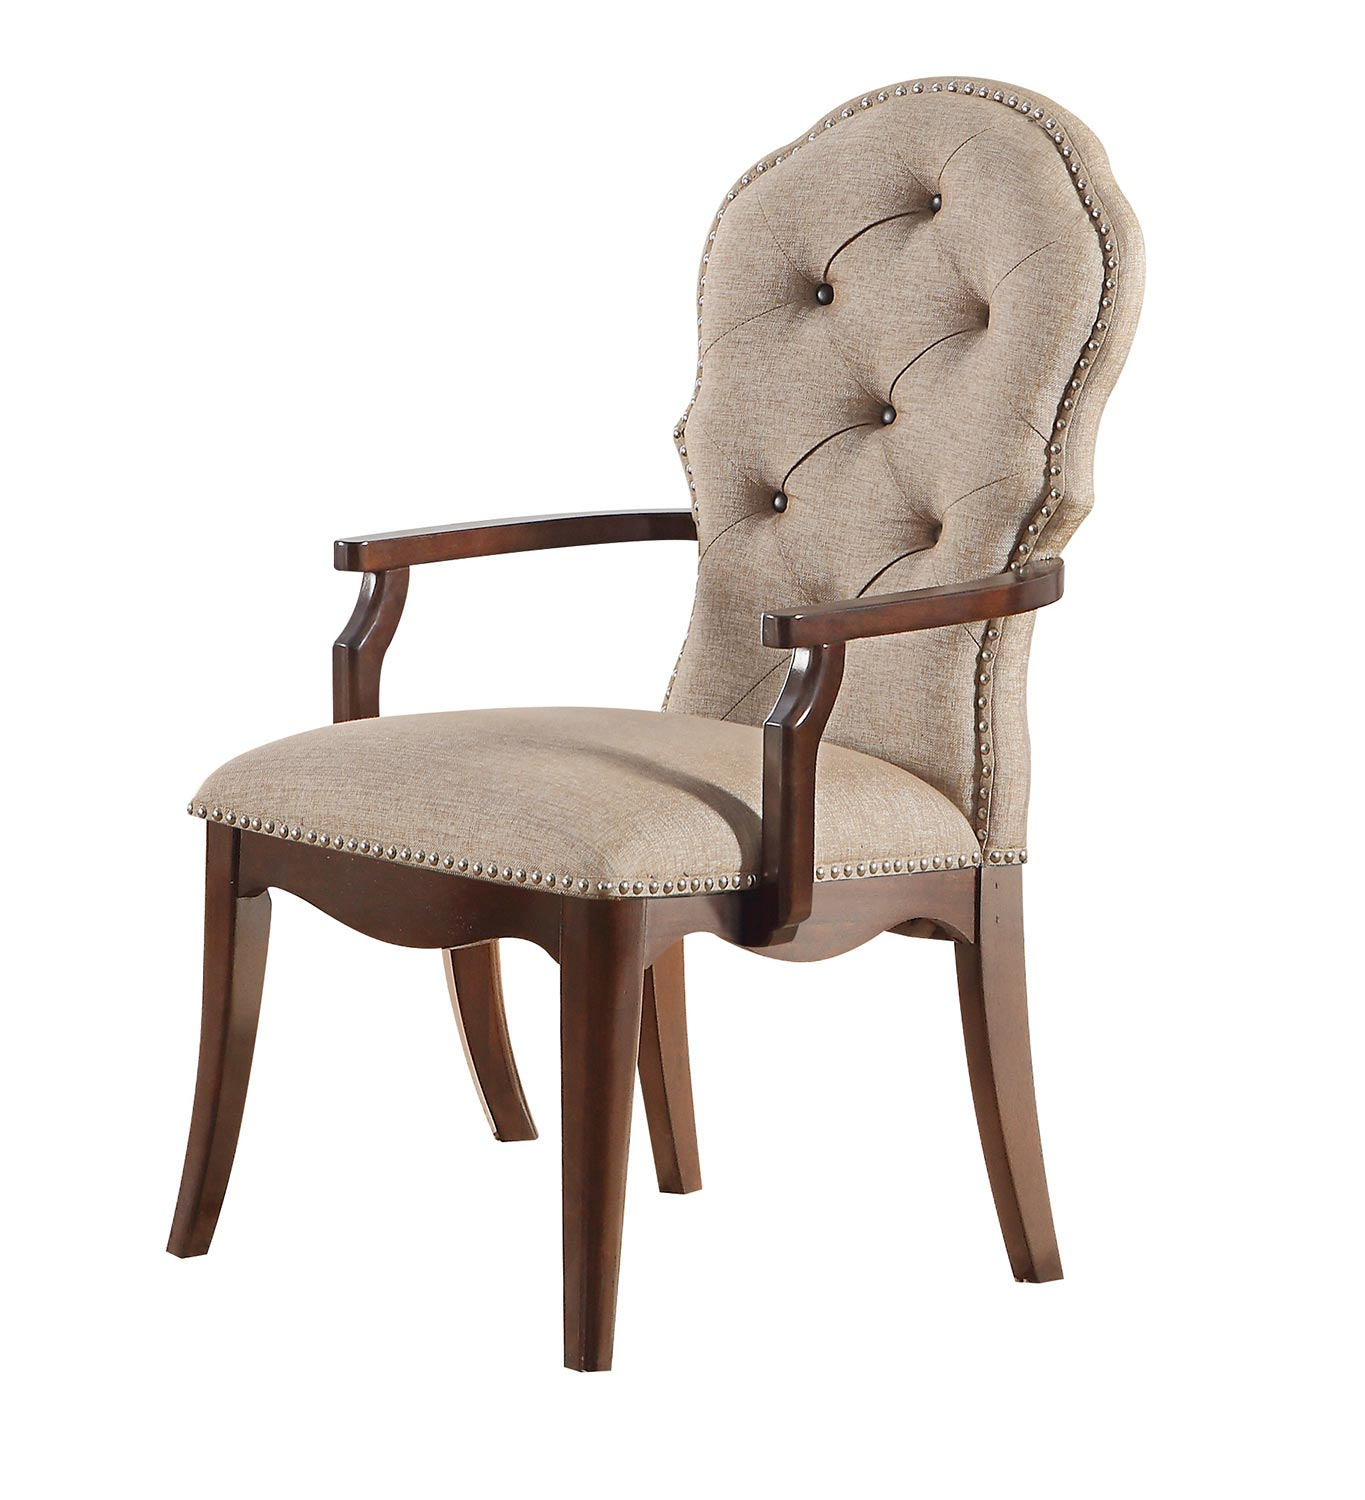 Acme Mathias Arm Chair - Beige Fabric/Walnut